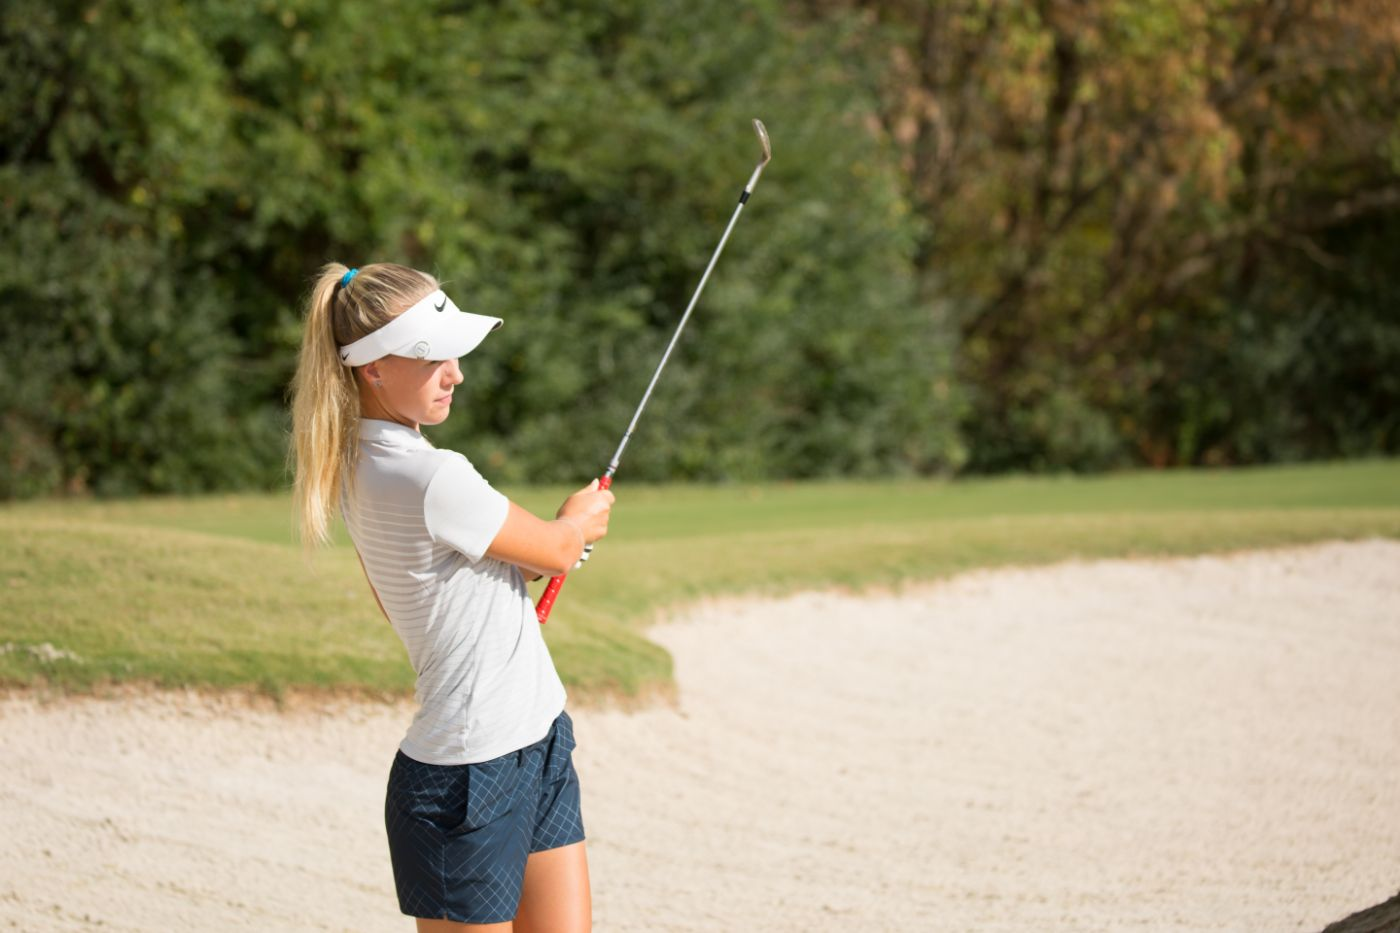 Bucs End Where They Started on Day 2 of Anuenue